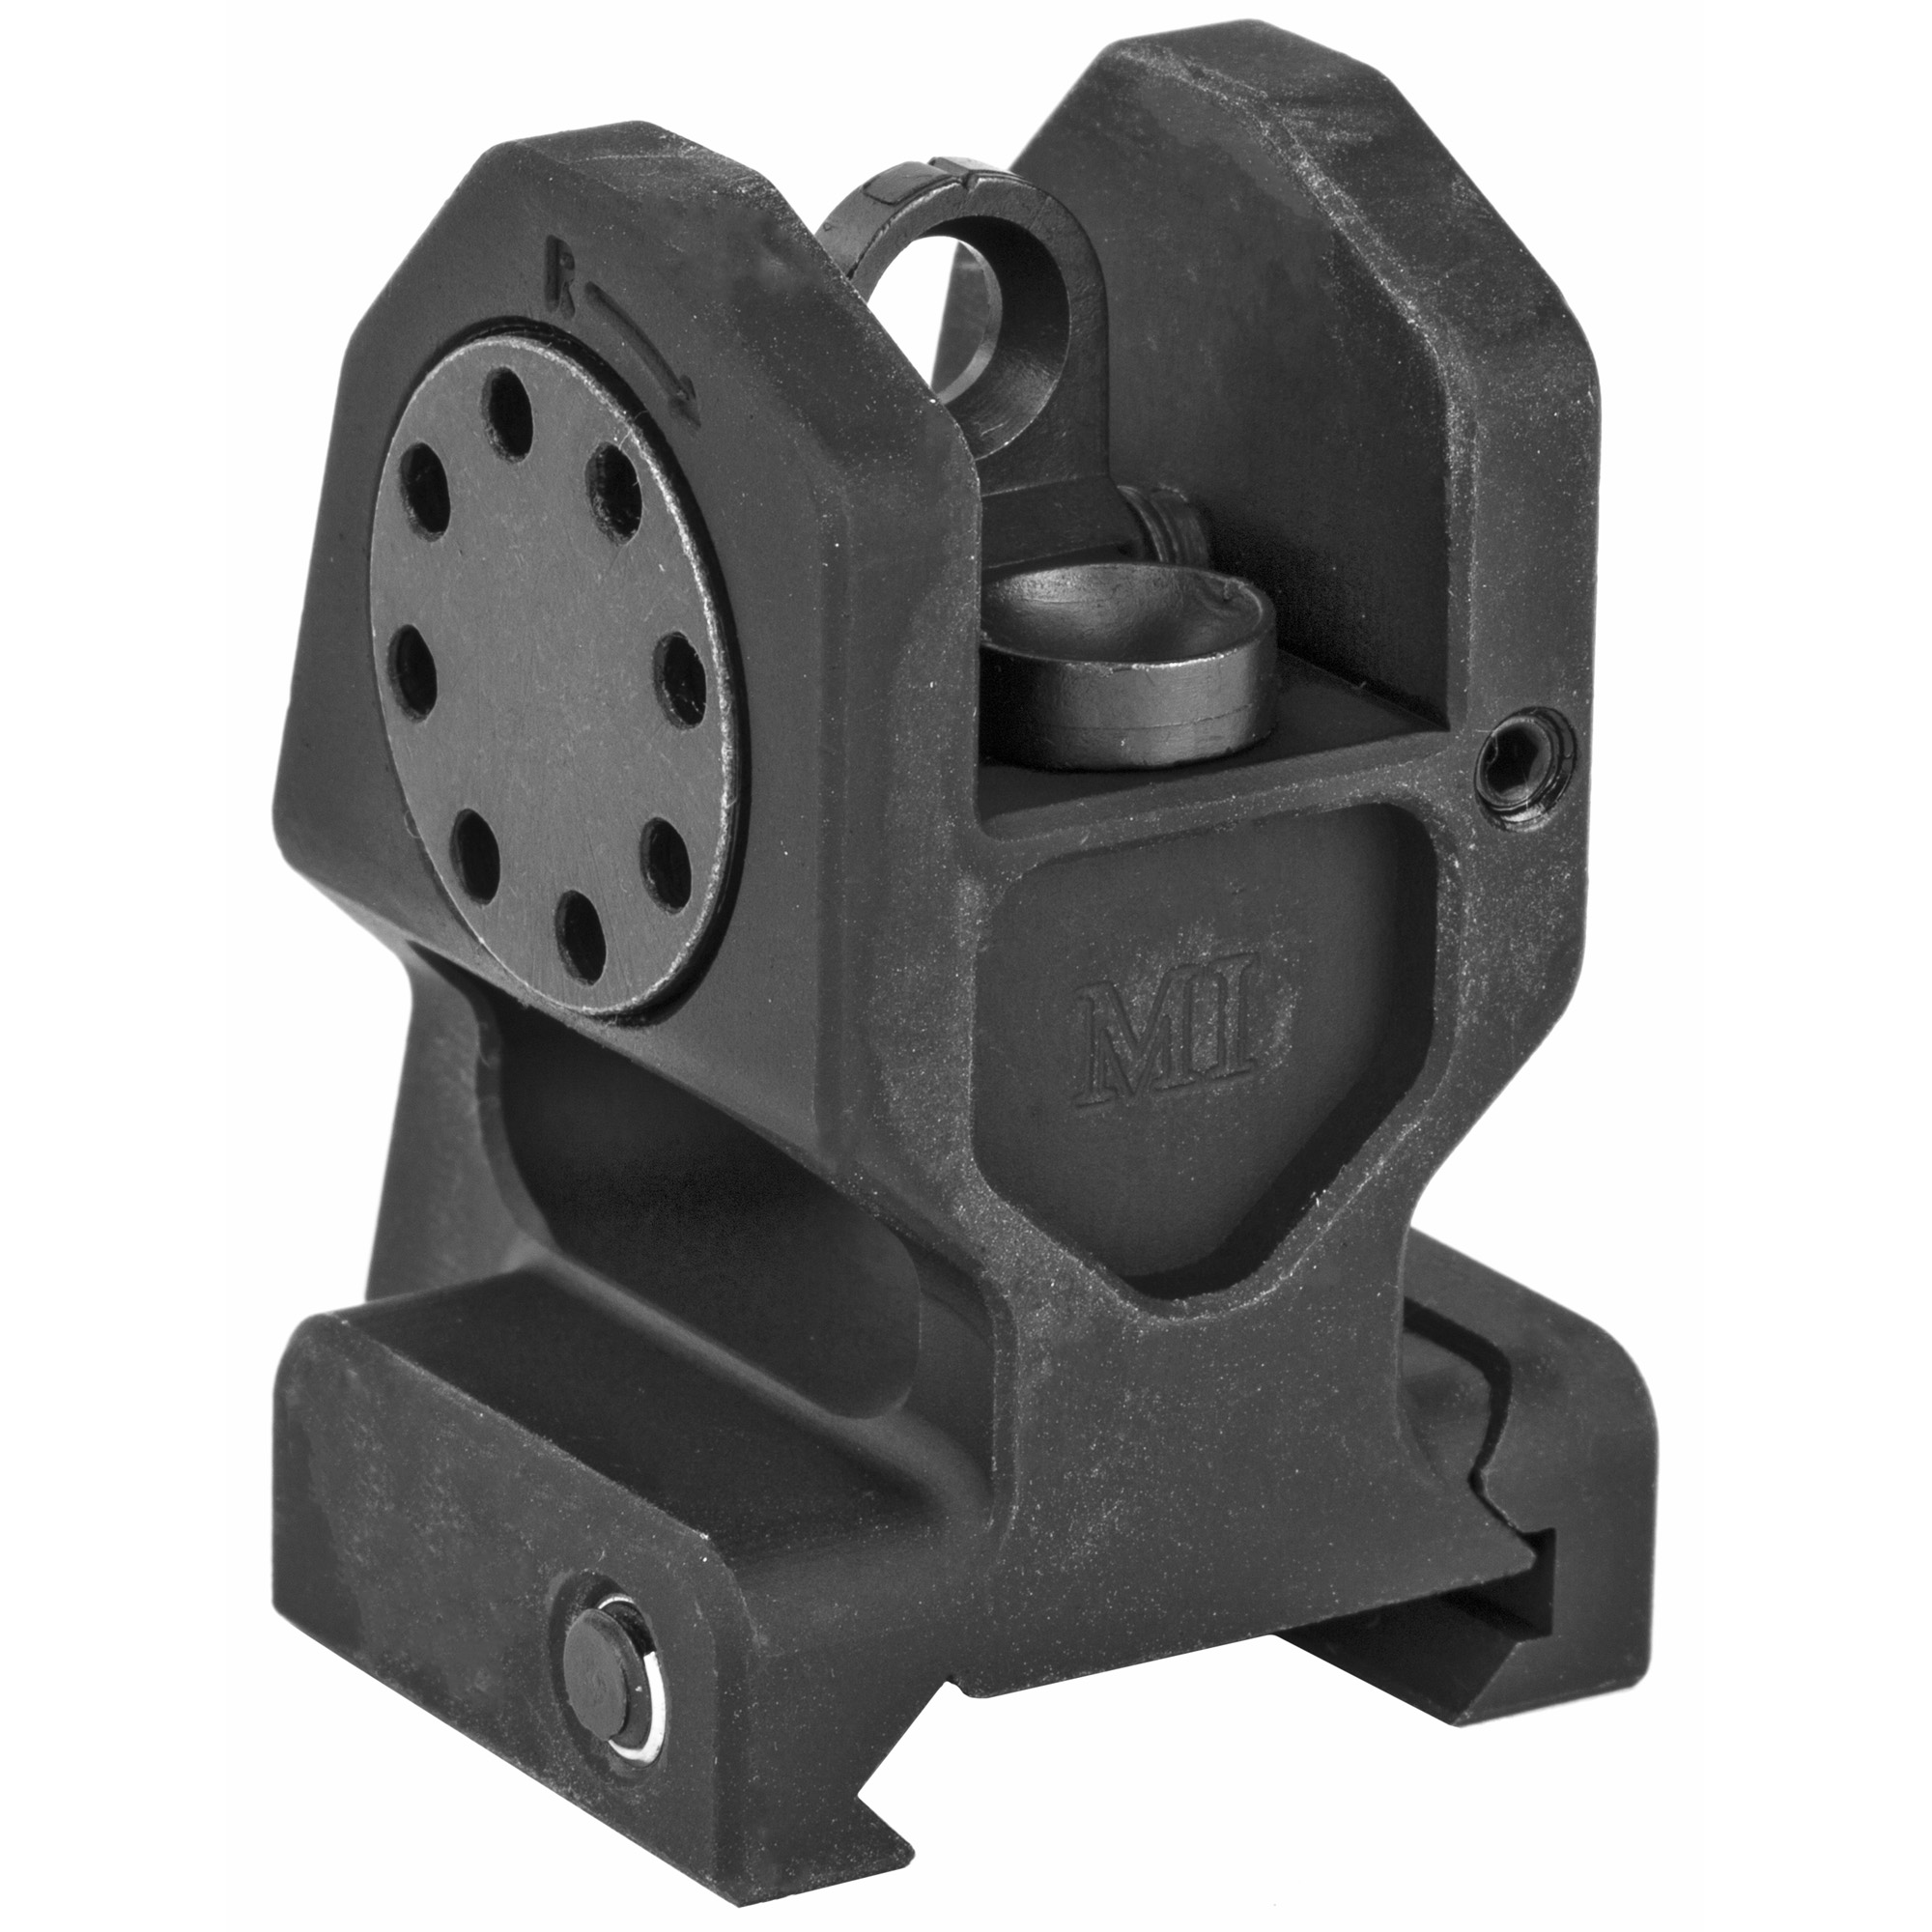 The Midwest Industries combat rear iron sight uses a standard A2 rear sight aperture which is protected by billet machined T6 6061 aluminum. 100% US made.